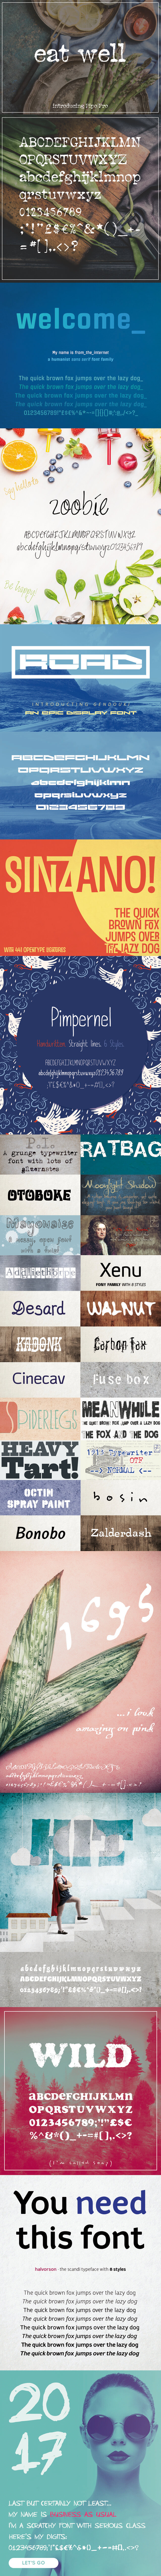 LAST CHANCE: 30+ Professional Font Families - only $18